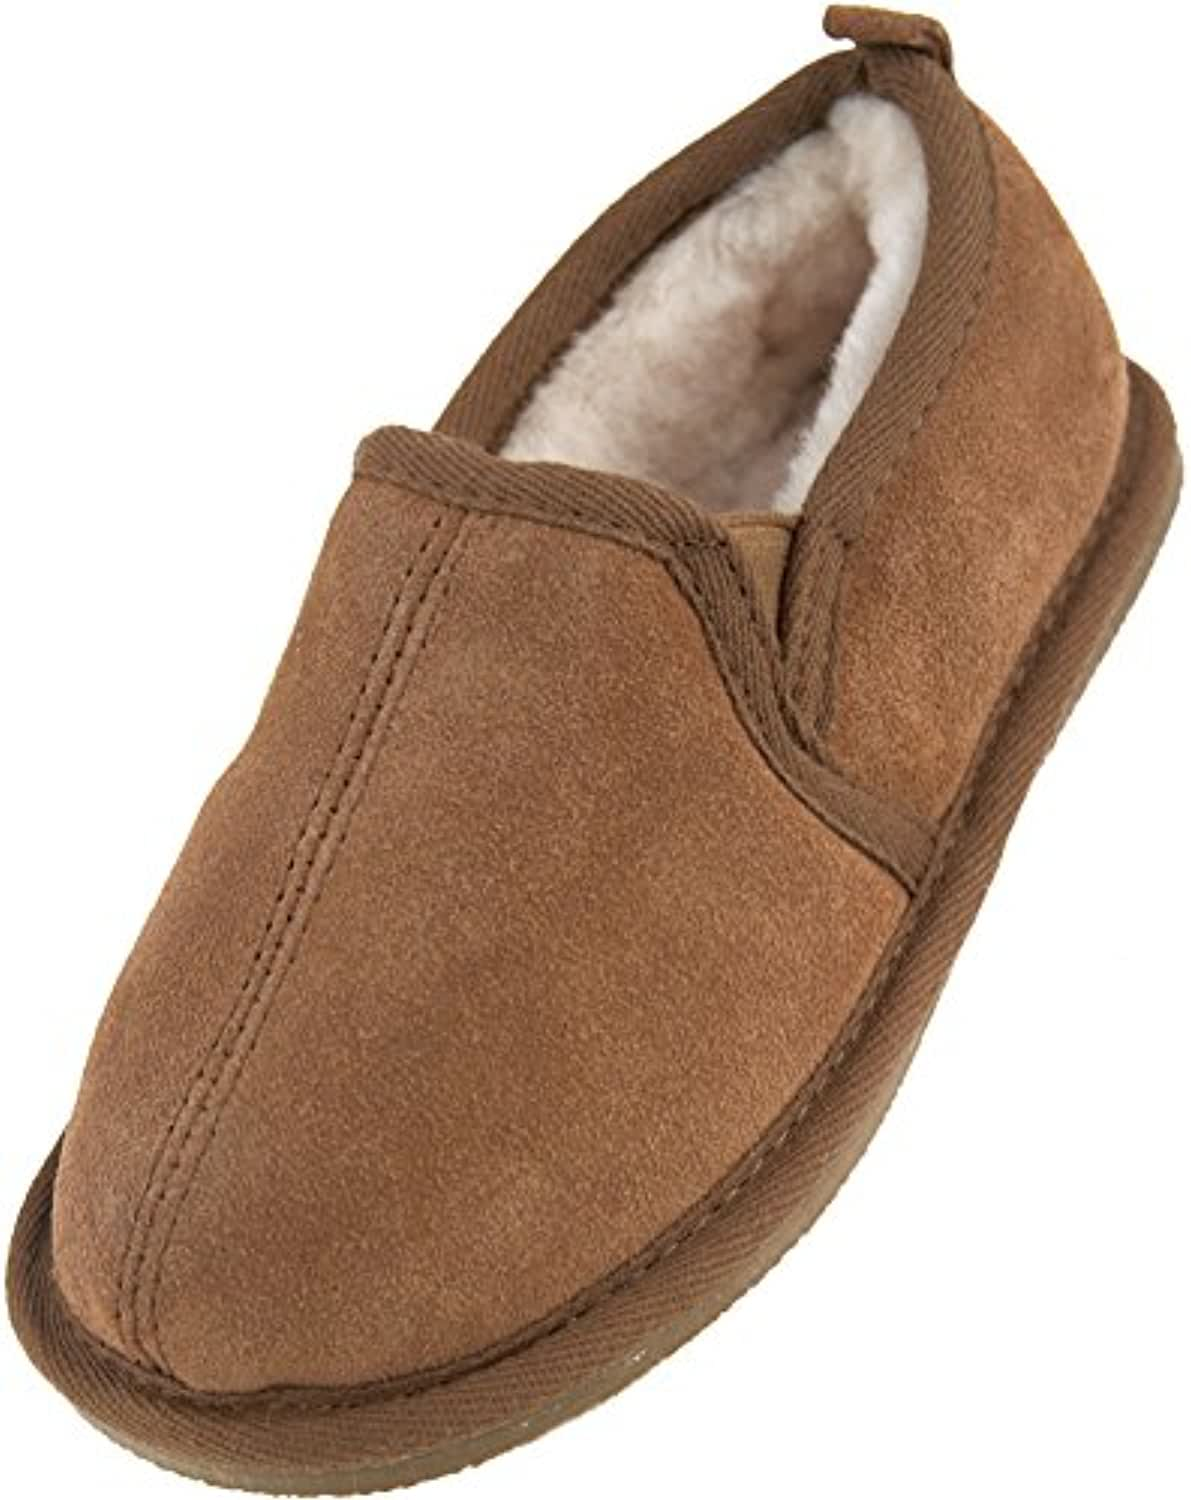 Lambland Childrens Genuine Suede and Lambswool Bootie Slipper with Suede Sole / Size 1 - 2 UK